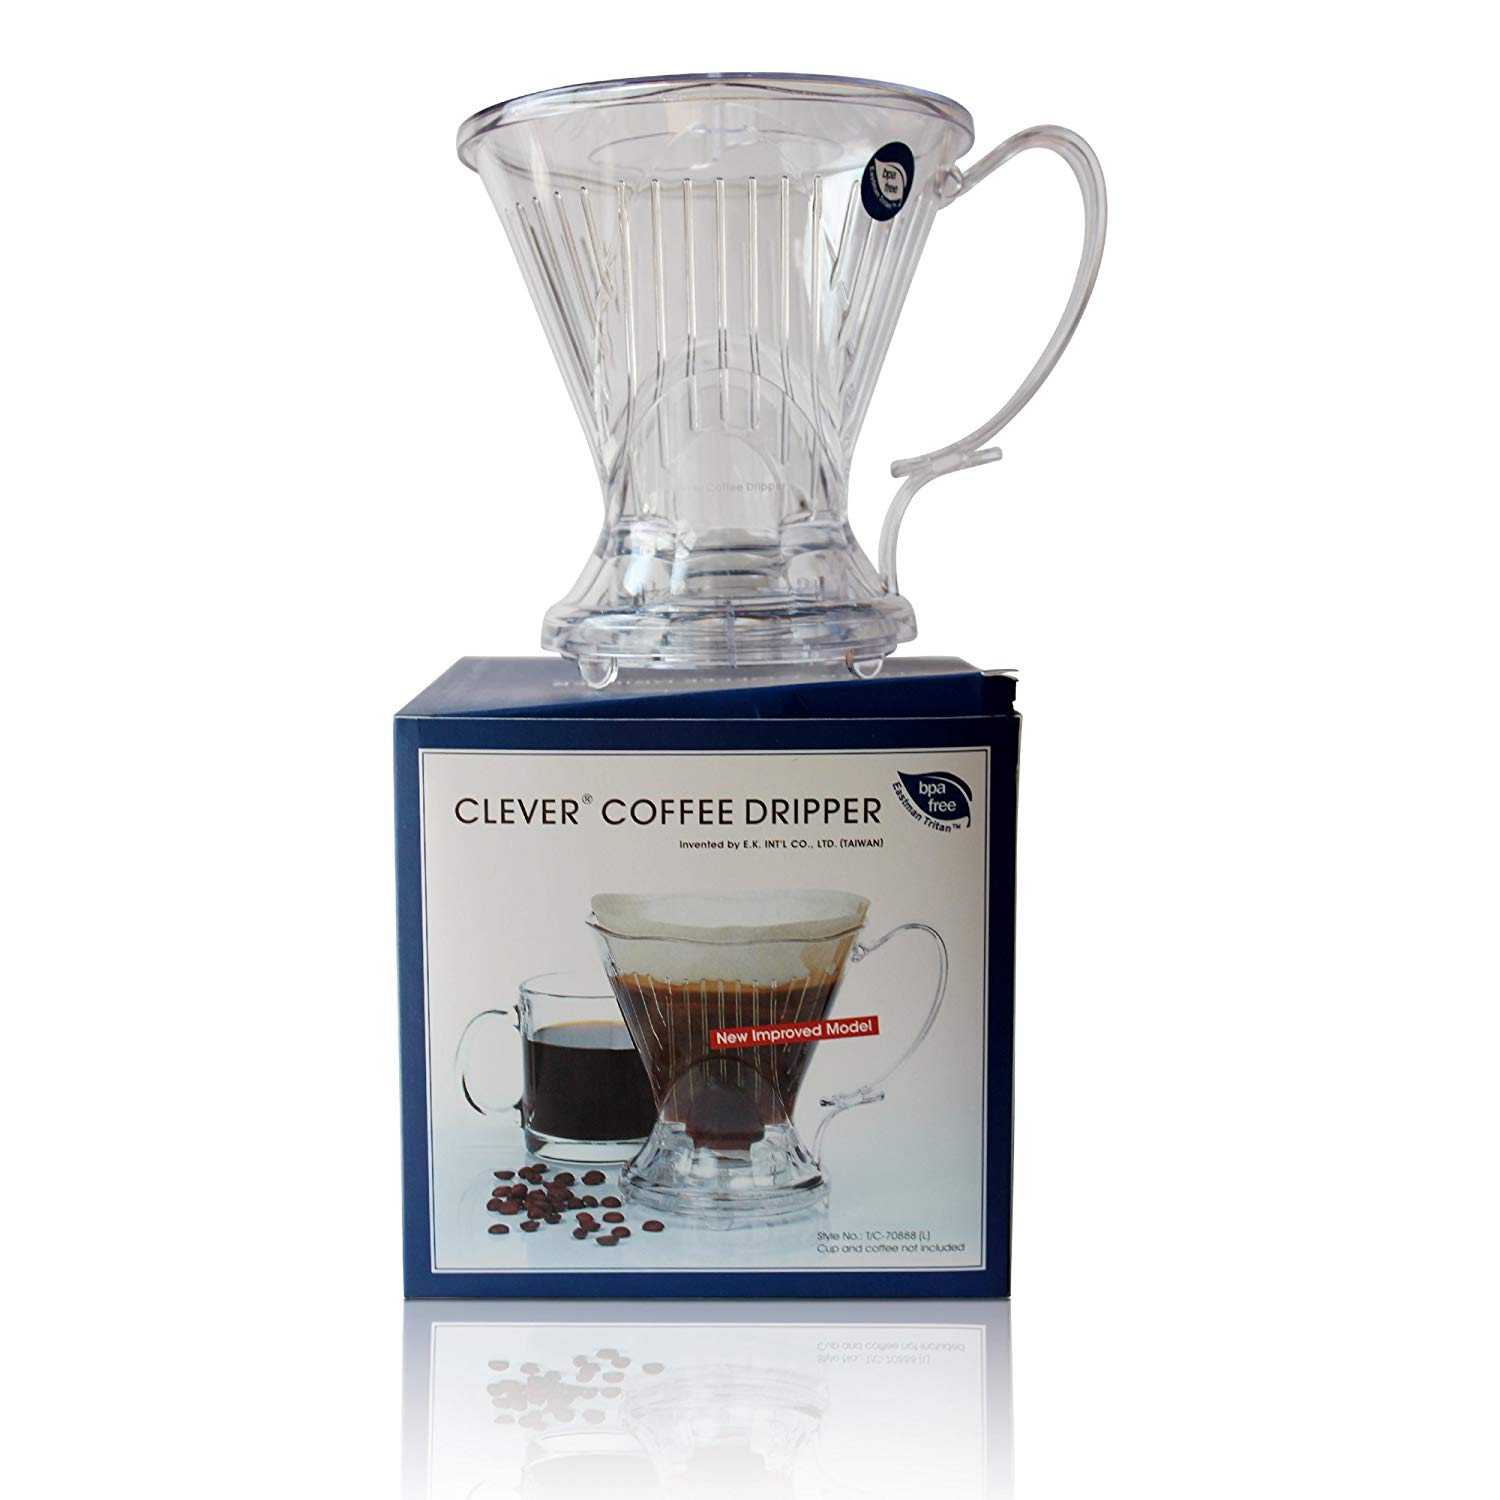 Clever coffee dripper by coastline | large – 18 ounces